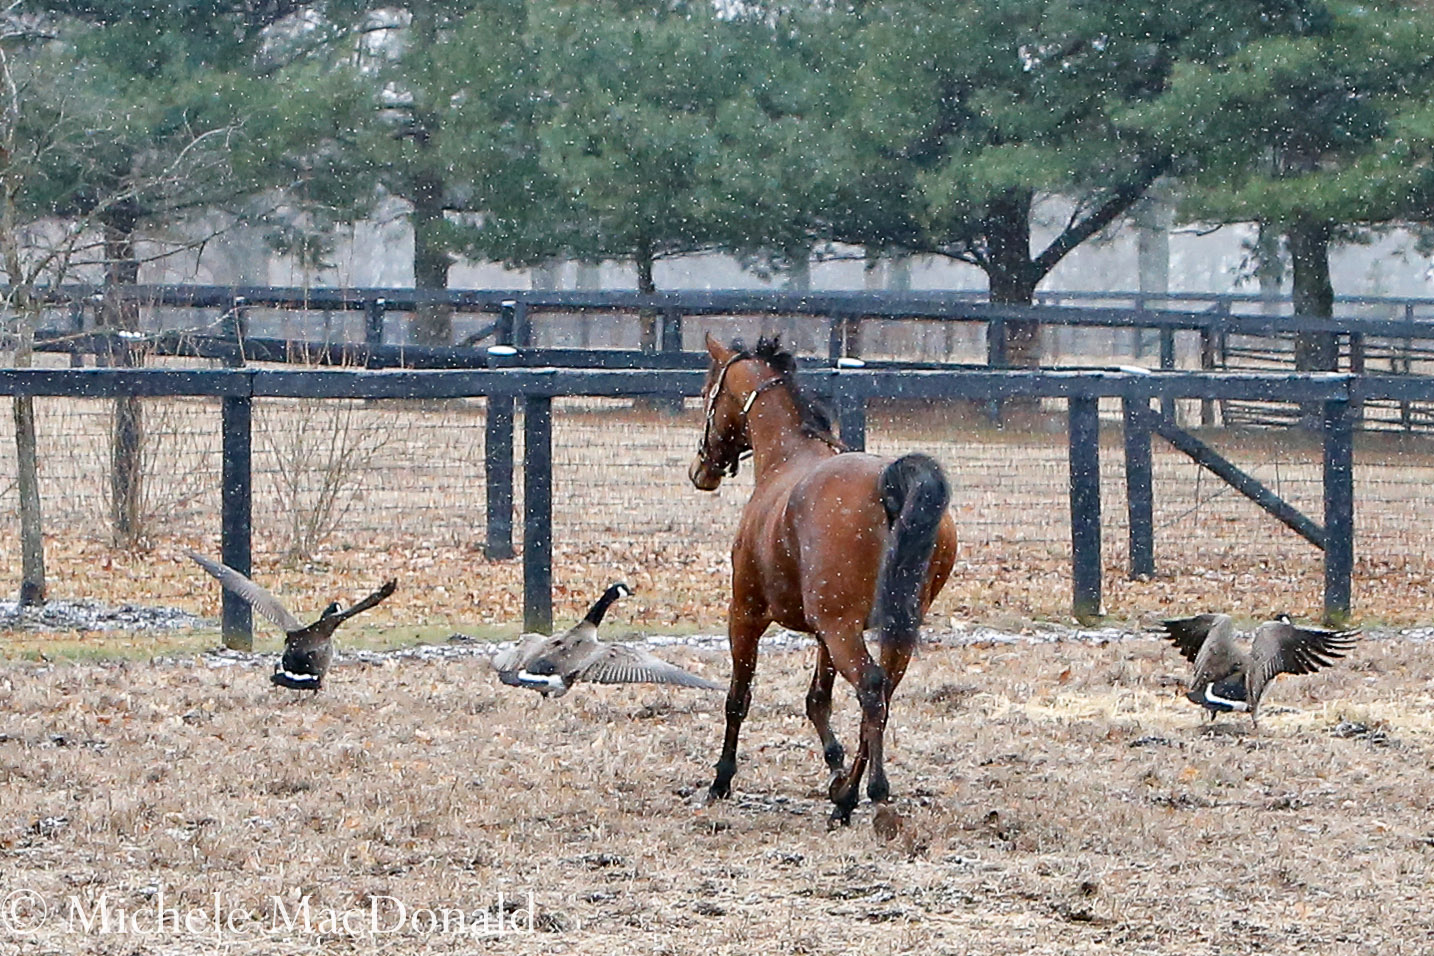 When she spied some Canada geese, Lady Eli put her head down and playfully chased them. Photo: Michele MacDonald